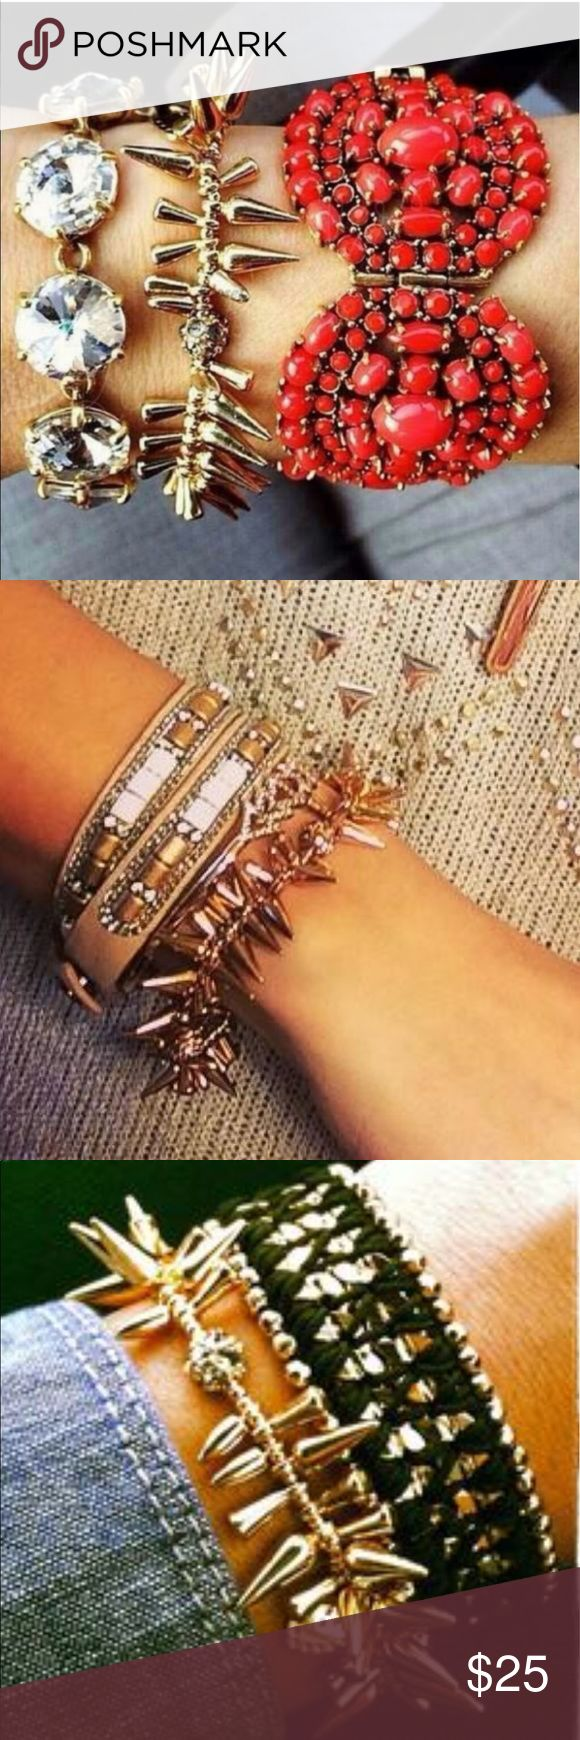 Stella&dot renegade bracelet (nwot) Brand new, comes in Stella bag as shown in photo. Stretchable fit. Price firm unless bundled Stella & Dot Jewelry Bracelets